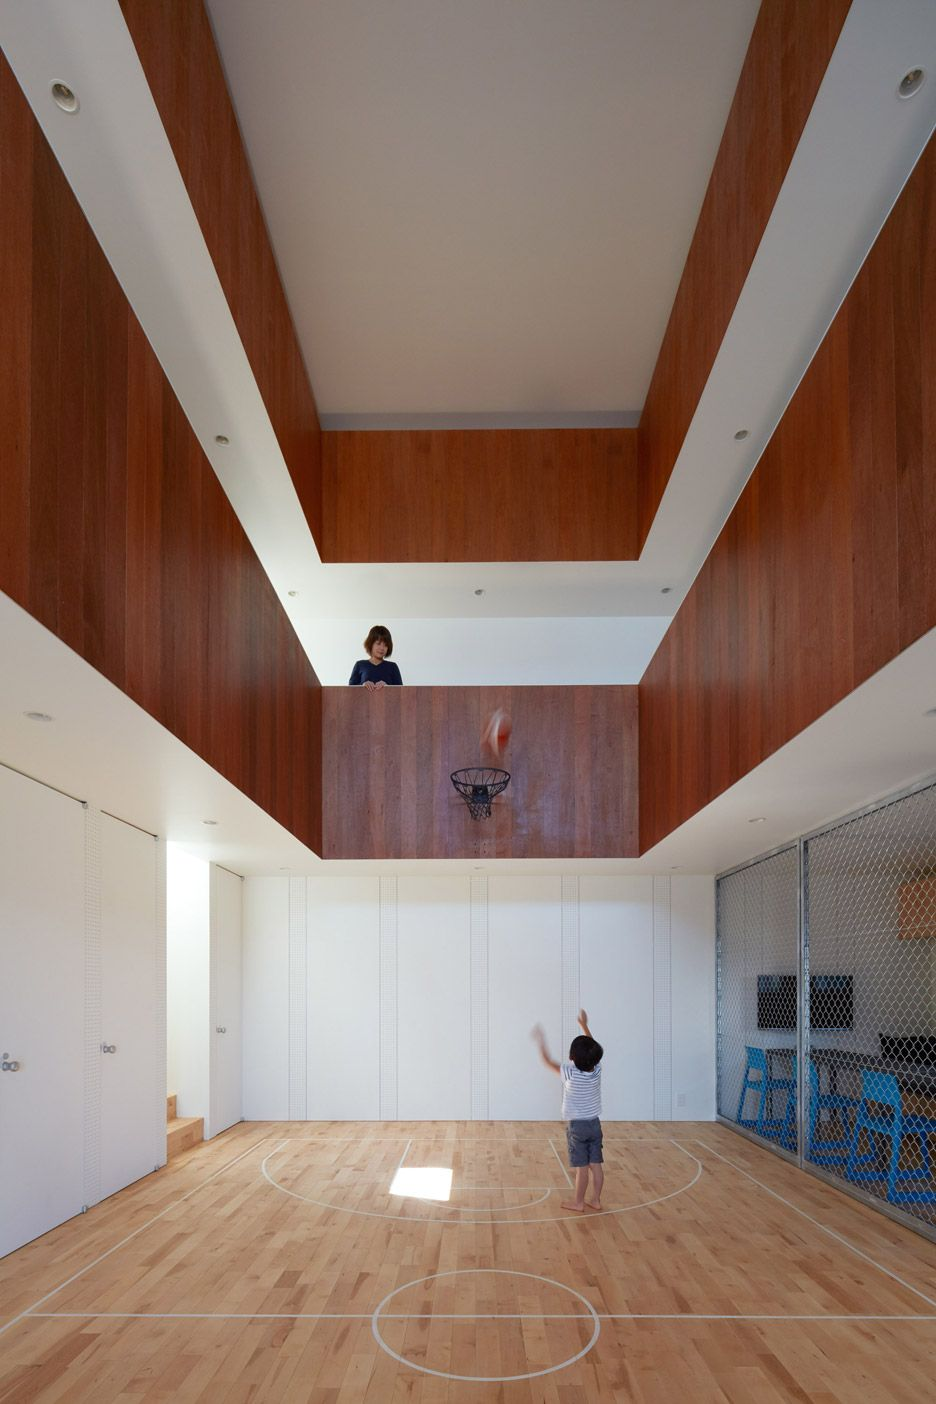 Koizumi sekkei designs house in japan with basketball for Home plans with indoor basketball court